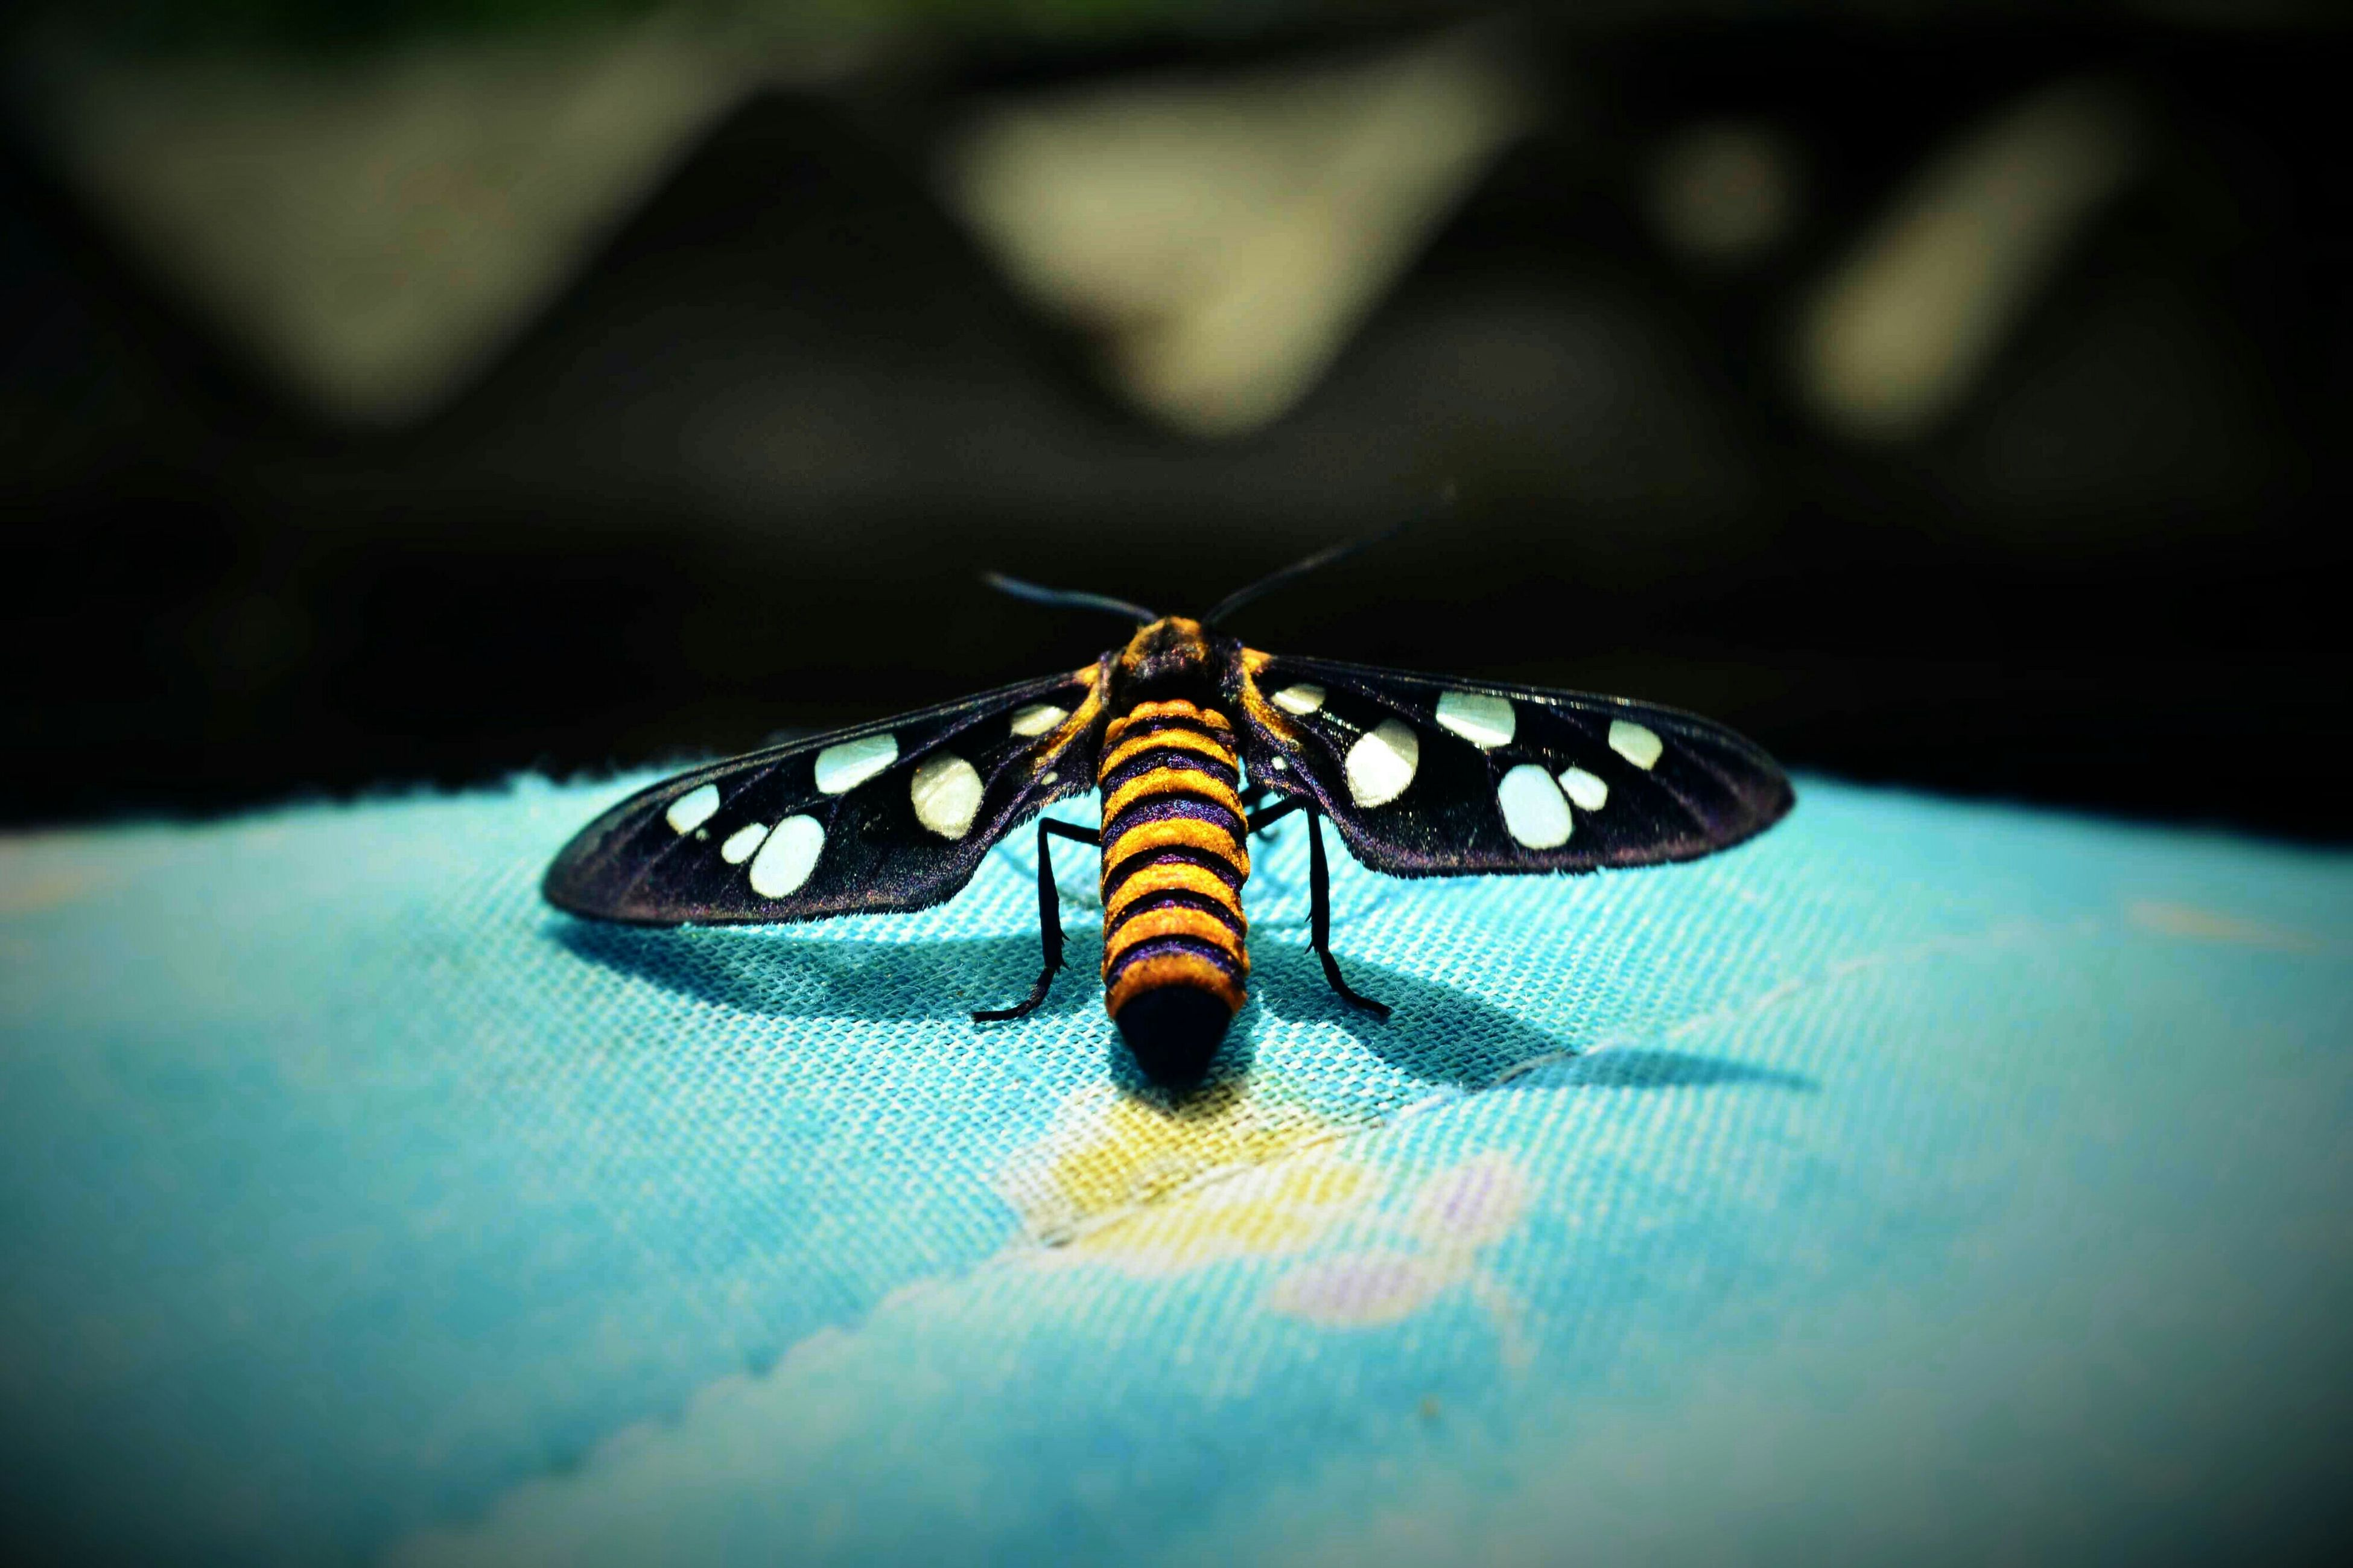 close-up, focus on foreground, insect, selective focus, indoors, butterfly - insect, pattern, design, animal representation, butterfly, one animal, animal themes, art and craft, no people, animal markings, creativity, animals in the wild, single object, still life, art